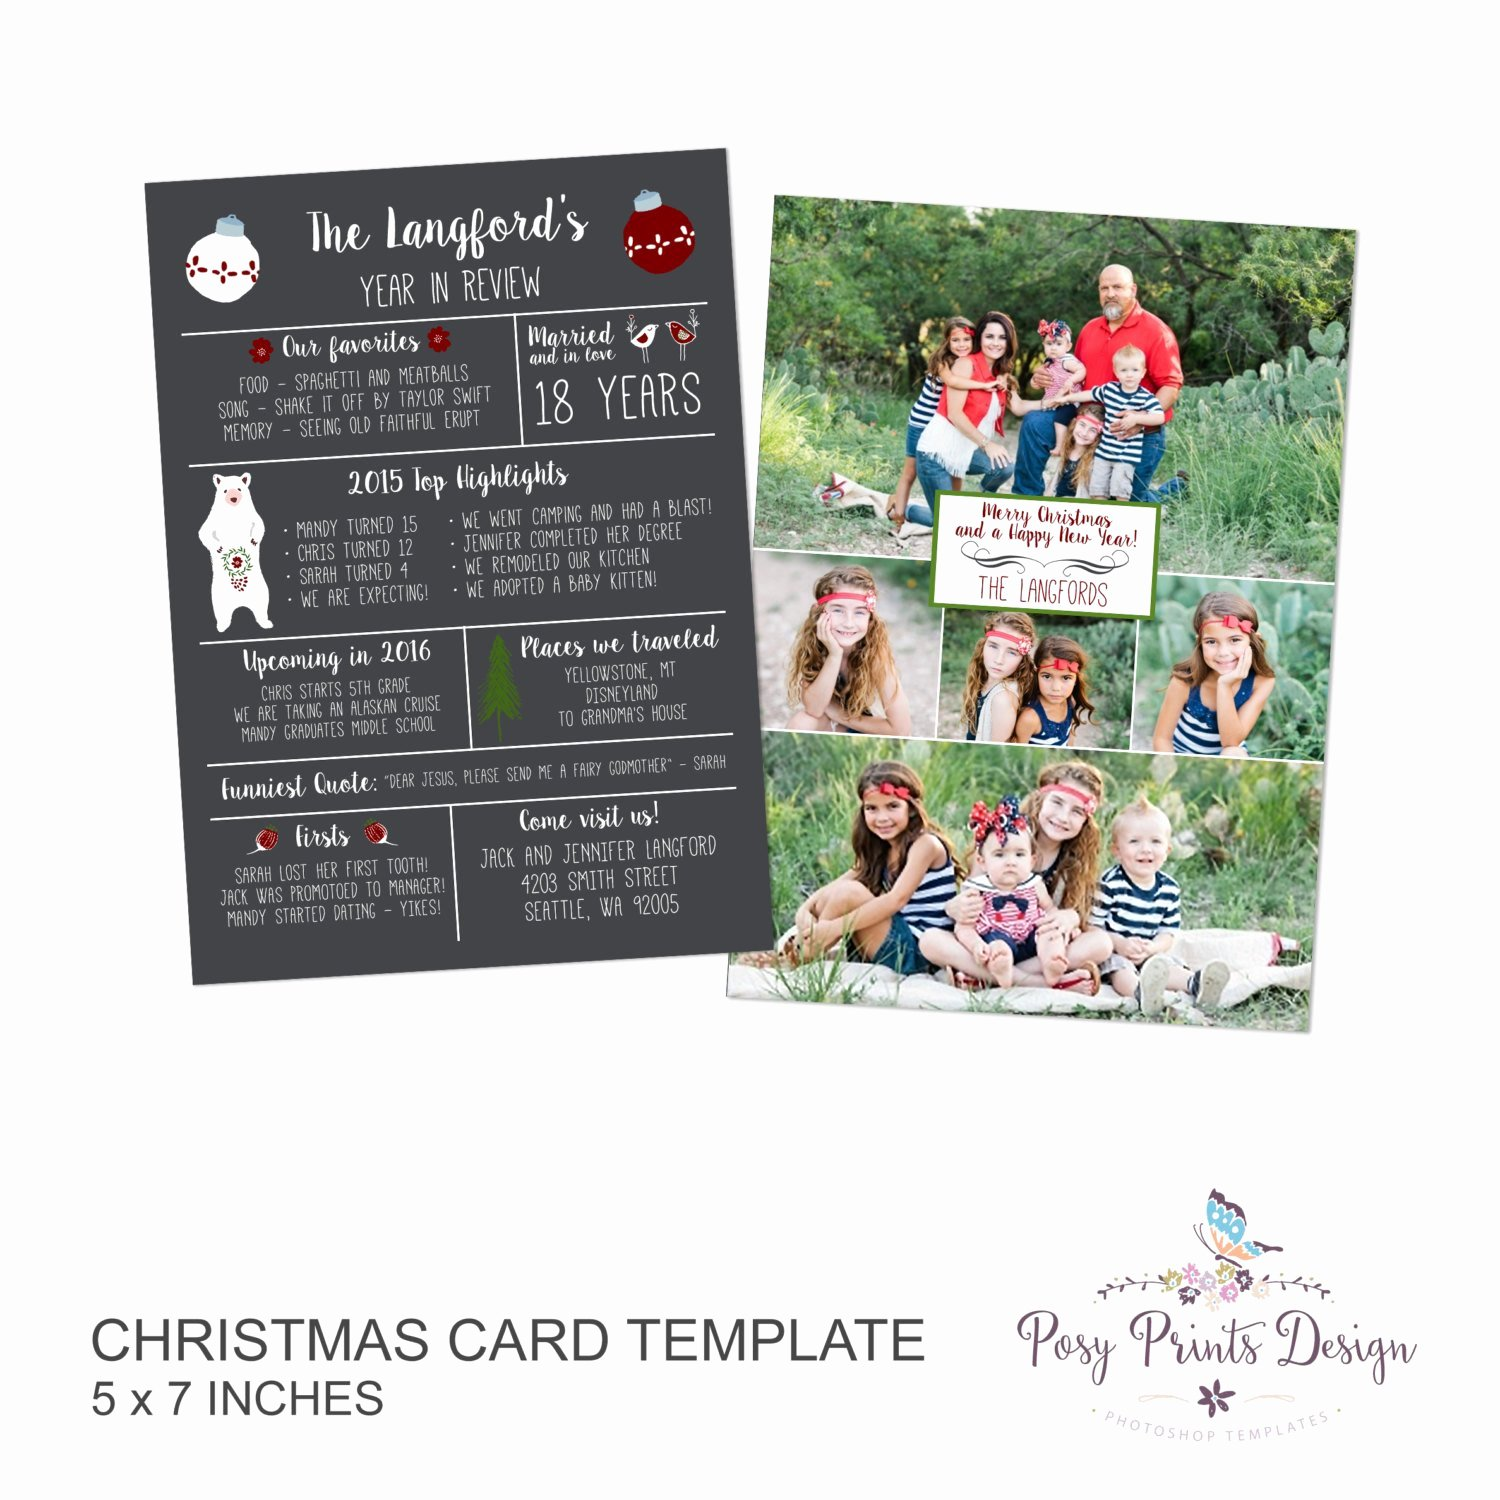 5x7 Postcard Template Photoshop Awesome Year In Review Christmas Card Template 5x7 Card